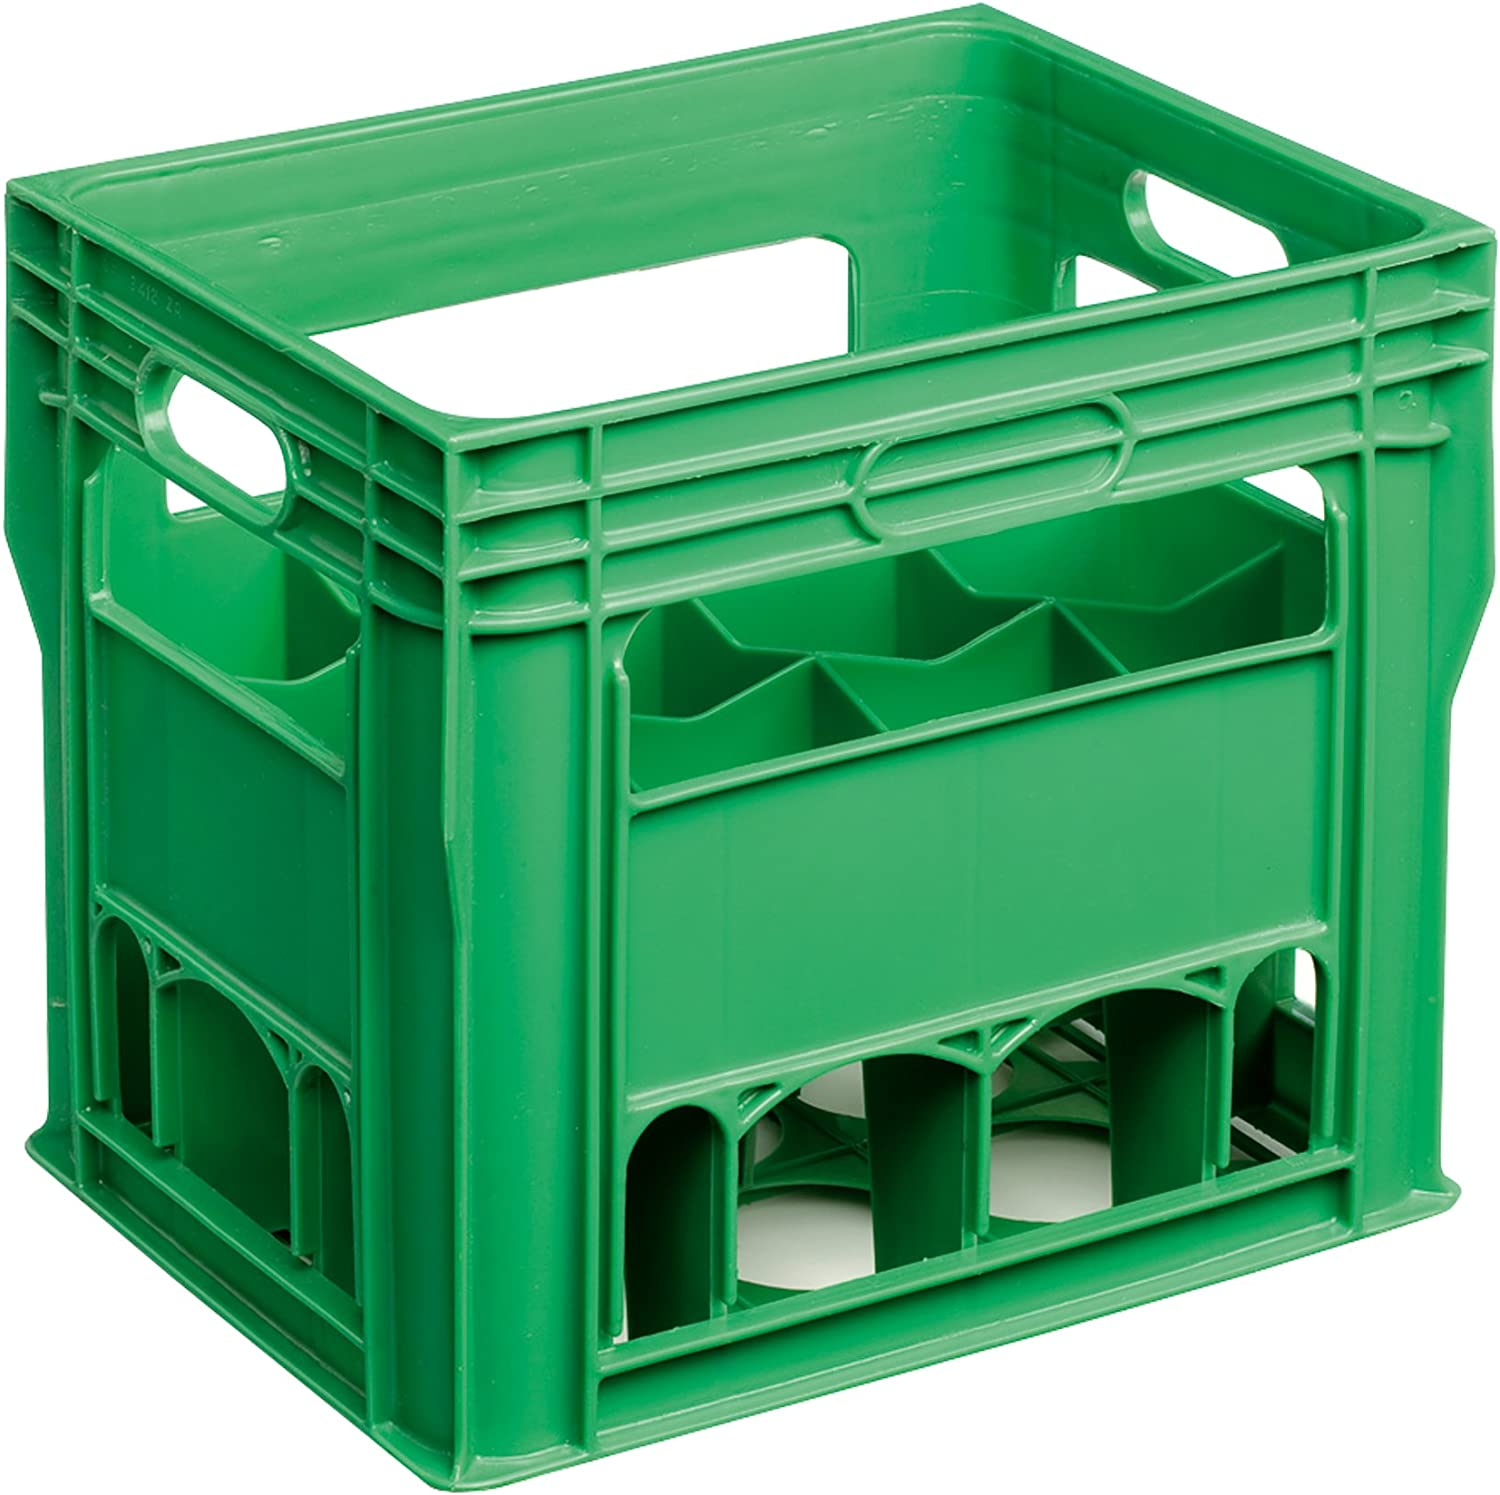 Caja de botellas de 12 compartimentos, para botellas de 750 ml: Amazon.es: Hogar